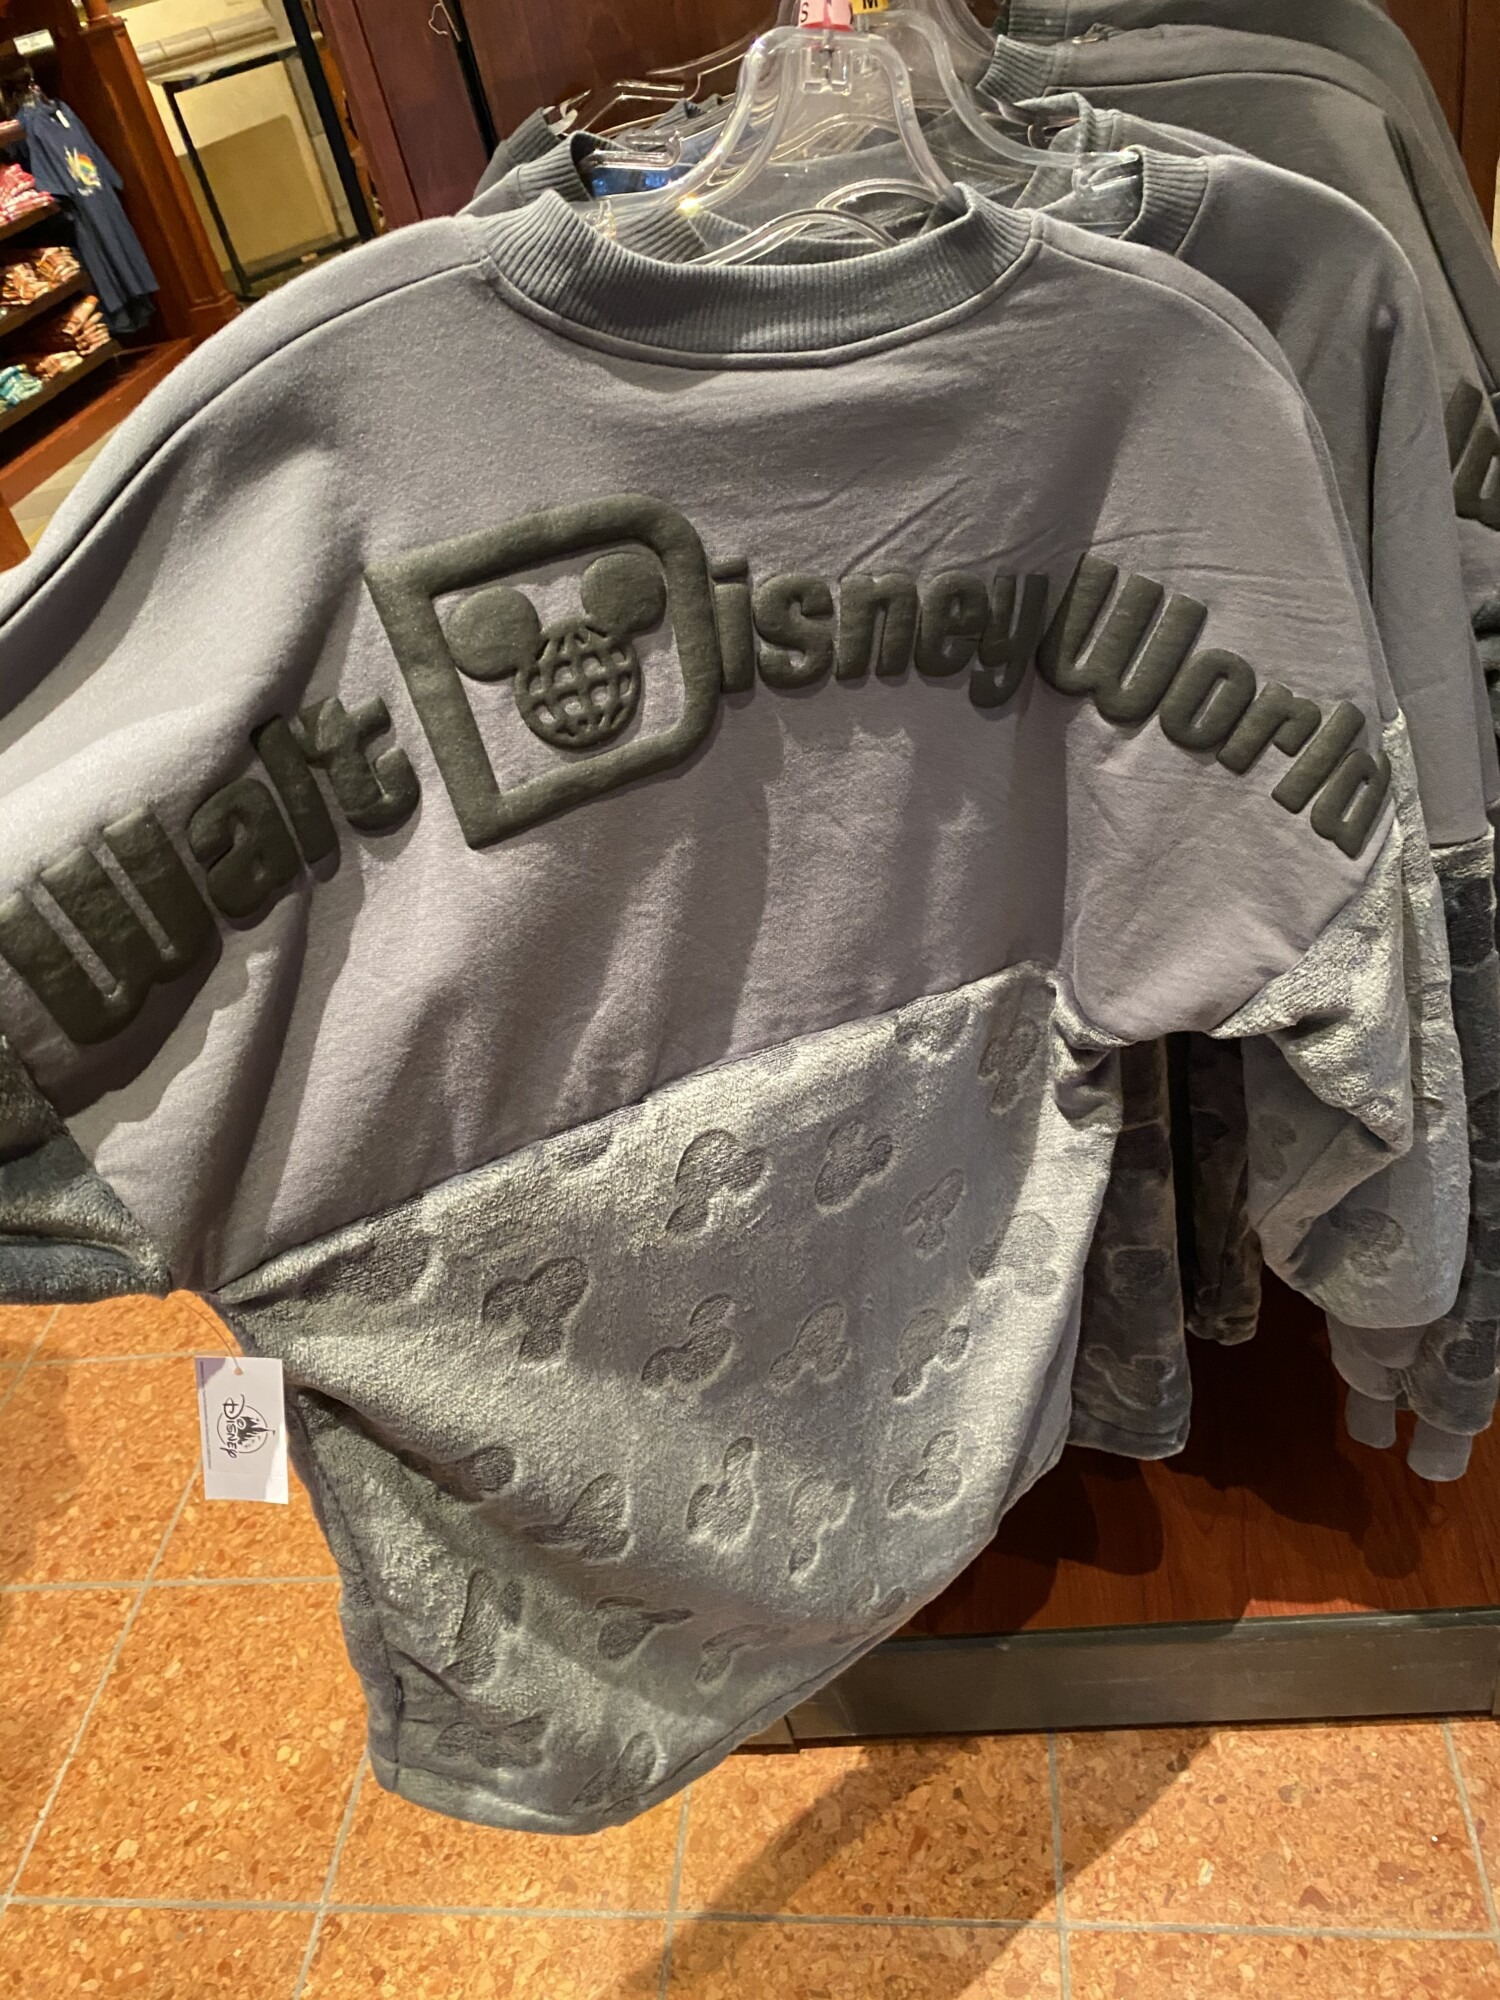 New Sparkly Silver Apparel at Hollywood Studios! 6